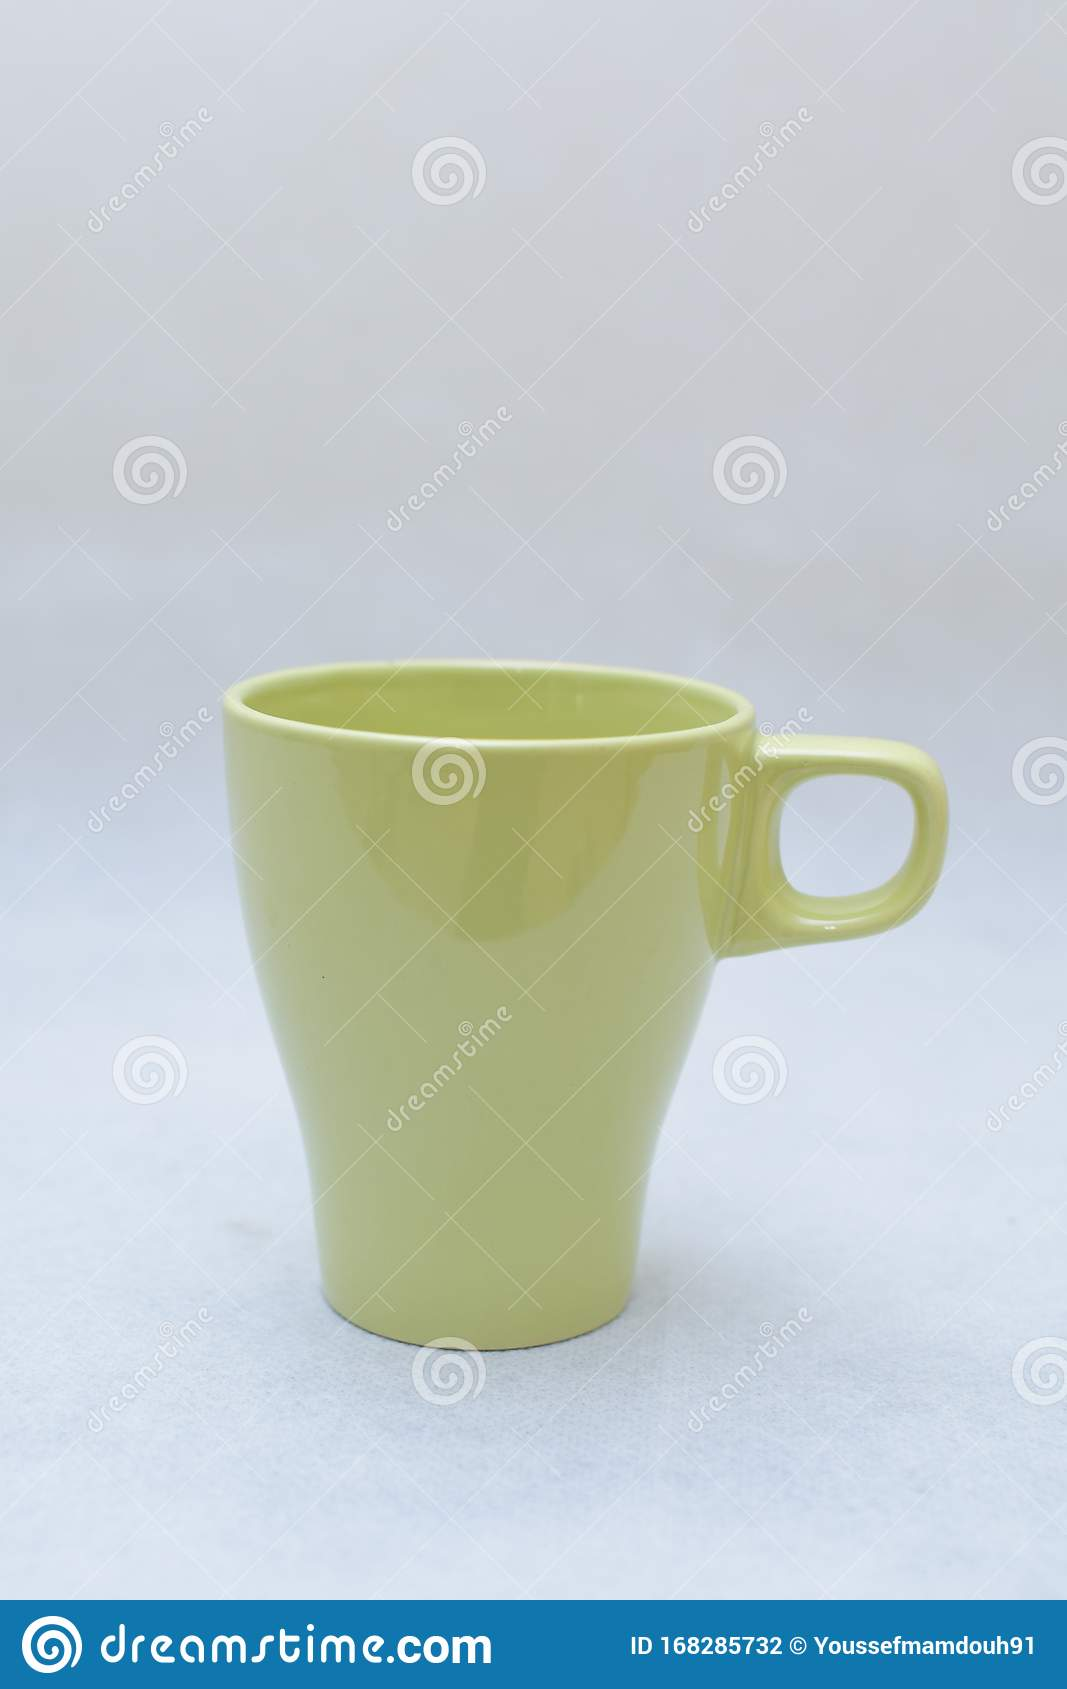 Mockup Set Of Colorful Tea Or Coffee Ceramic Mug Template For Branding Identity And Company Logo Design Drink Ware Dining Stock Photo Image Of Blank Clean 168285732